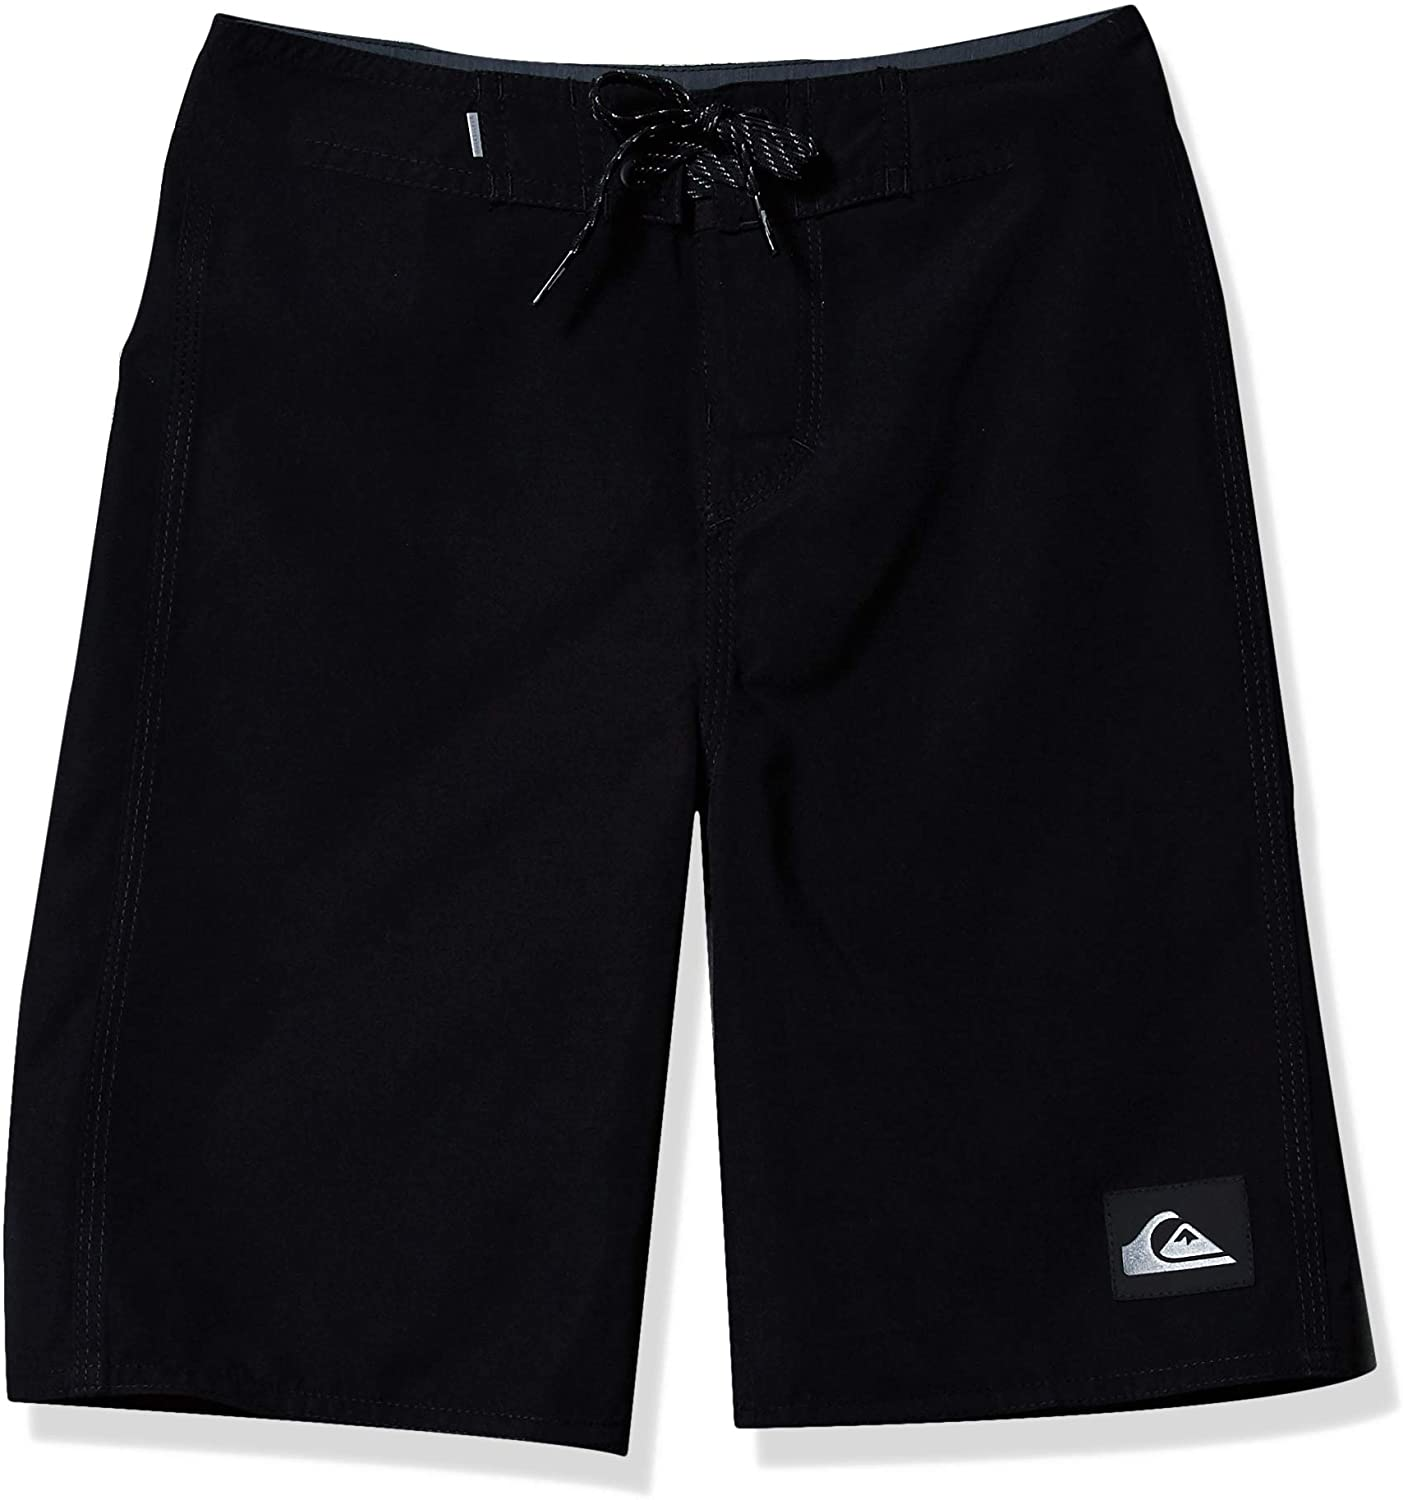 Quiksilver Boys Big Highline Kaimana Youth 18 Boardshort Swim Trunk